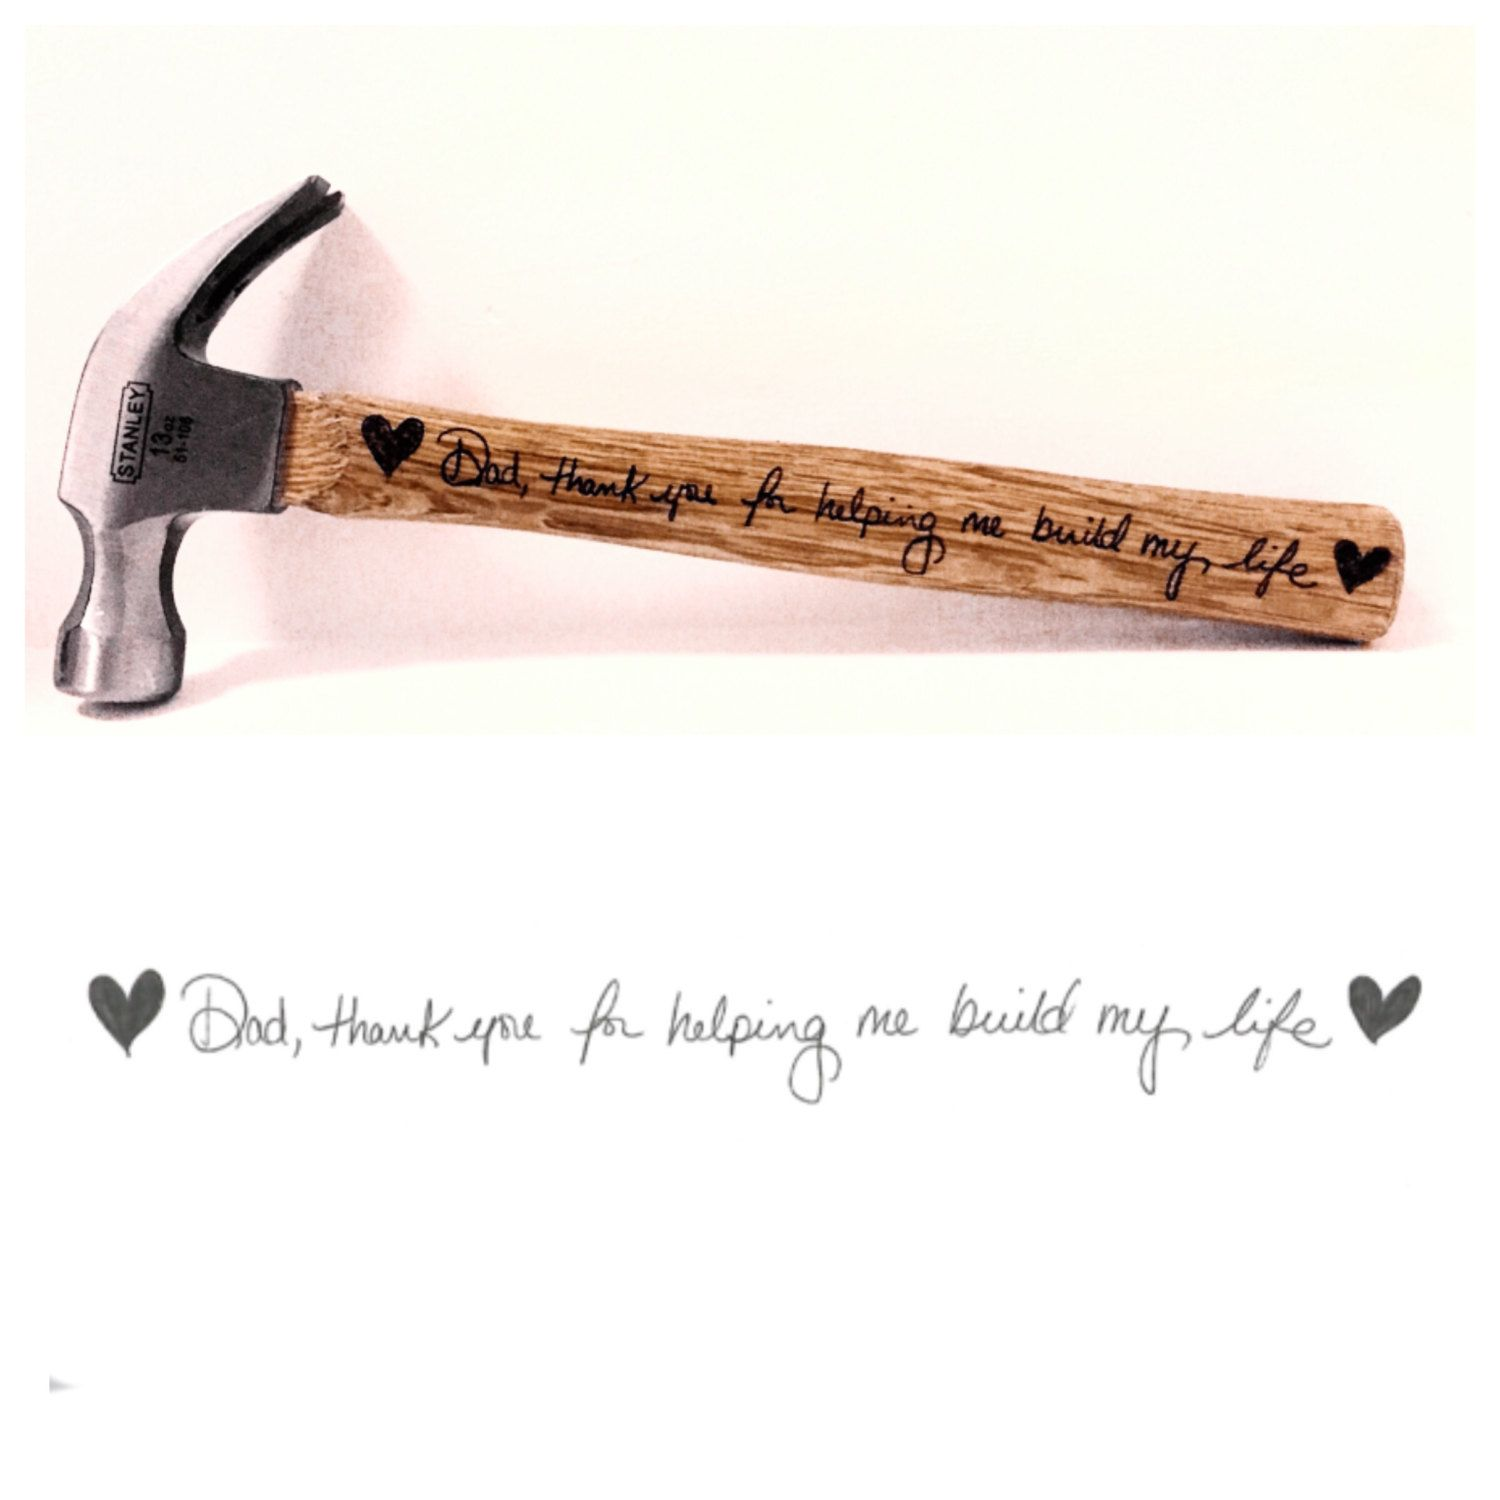 Personalized hammer, engraved hammer, Father's Day gift, fathers day hammer, Personalized Tool, Tools for Dad, personalized writing by NiksNaksStore on Etsy